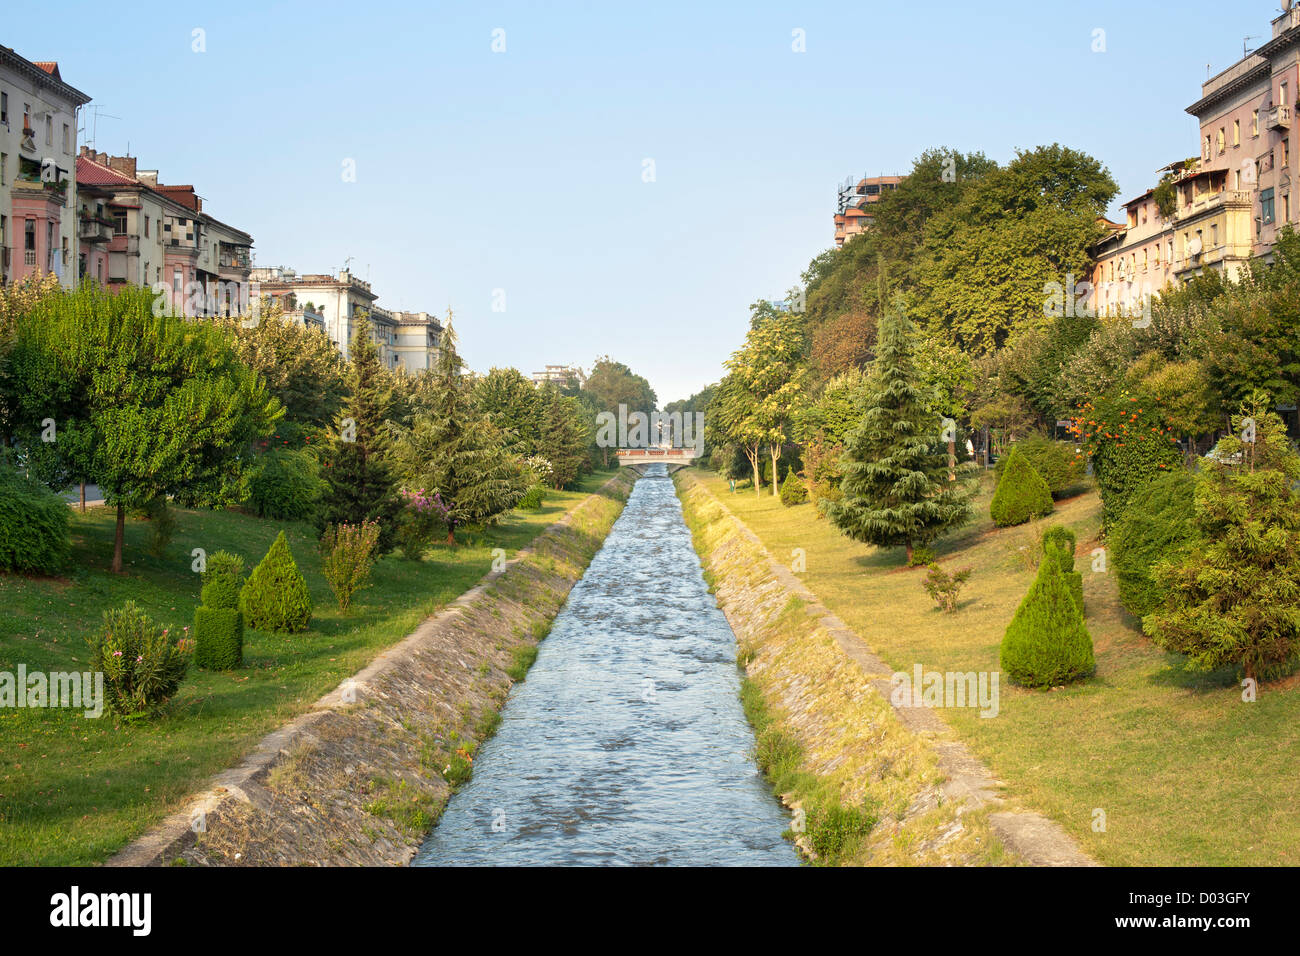 The Lana 'river' in Tirana, the capital of Albania. - Stock Image